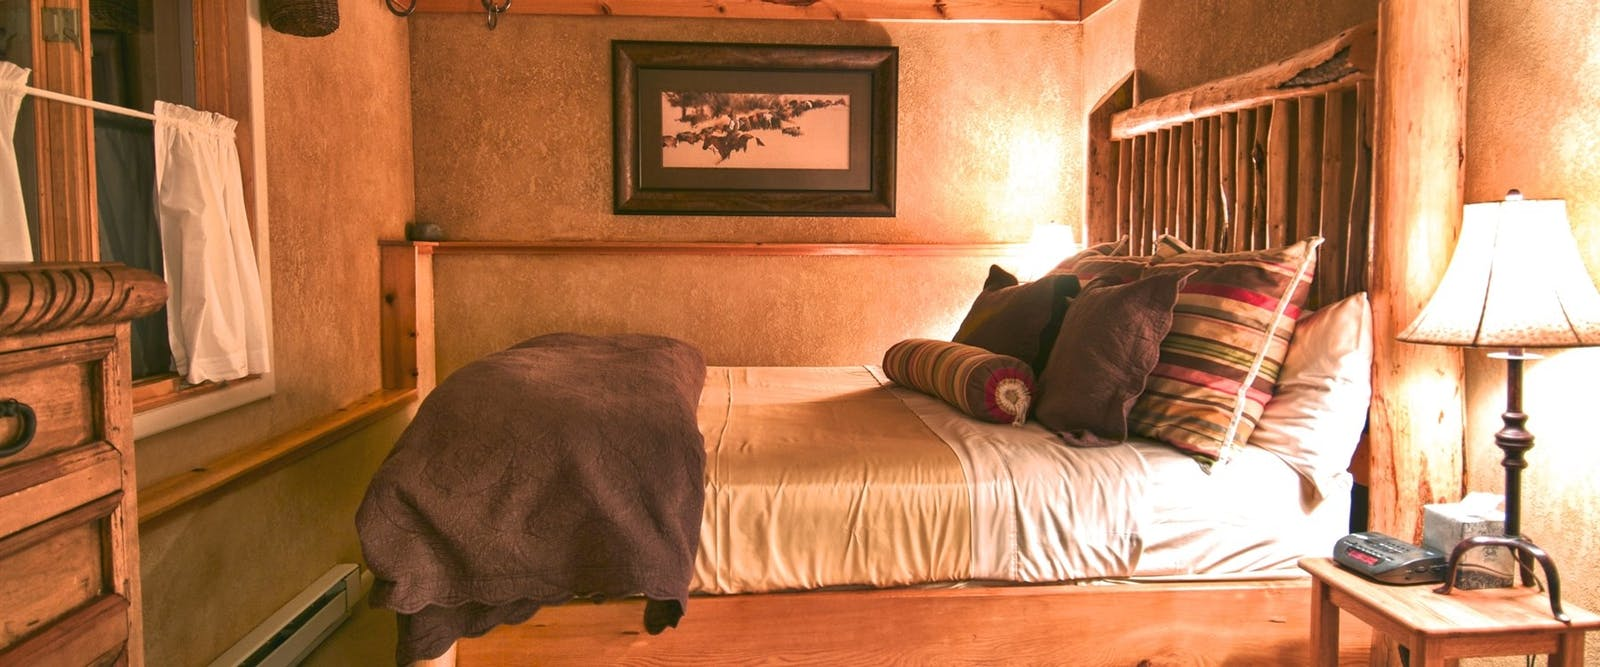 Wapiti Master Bedroom At Vista Verde Ranch